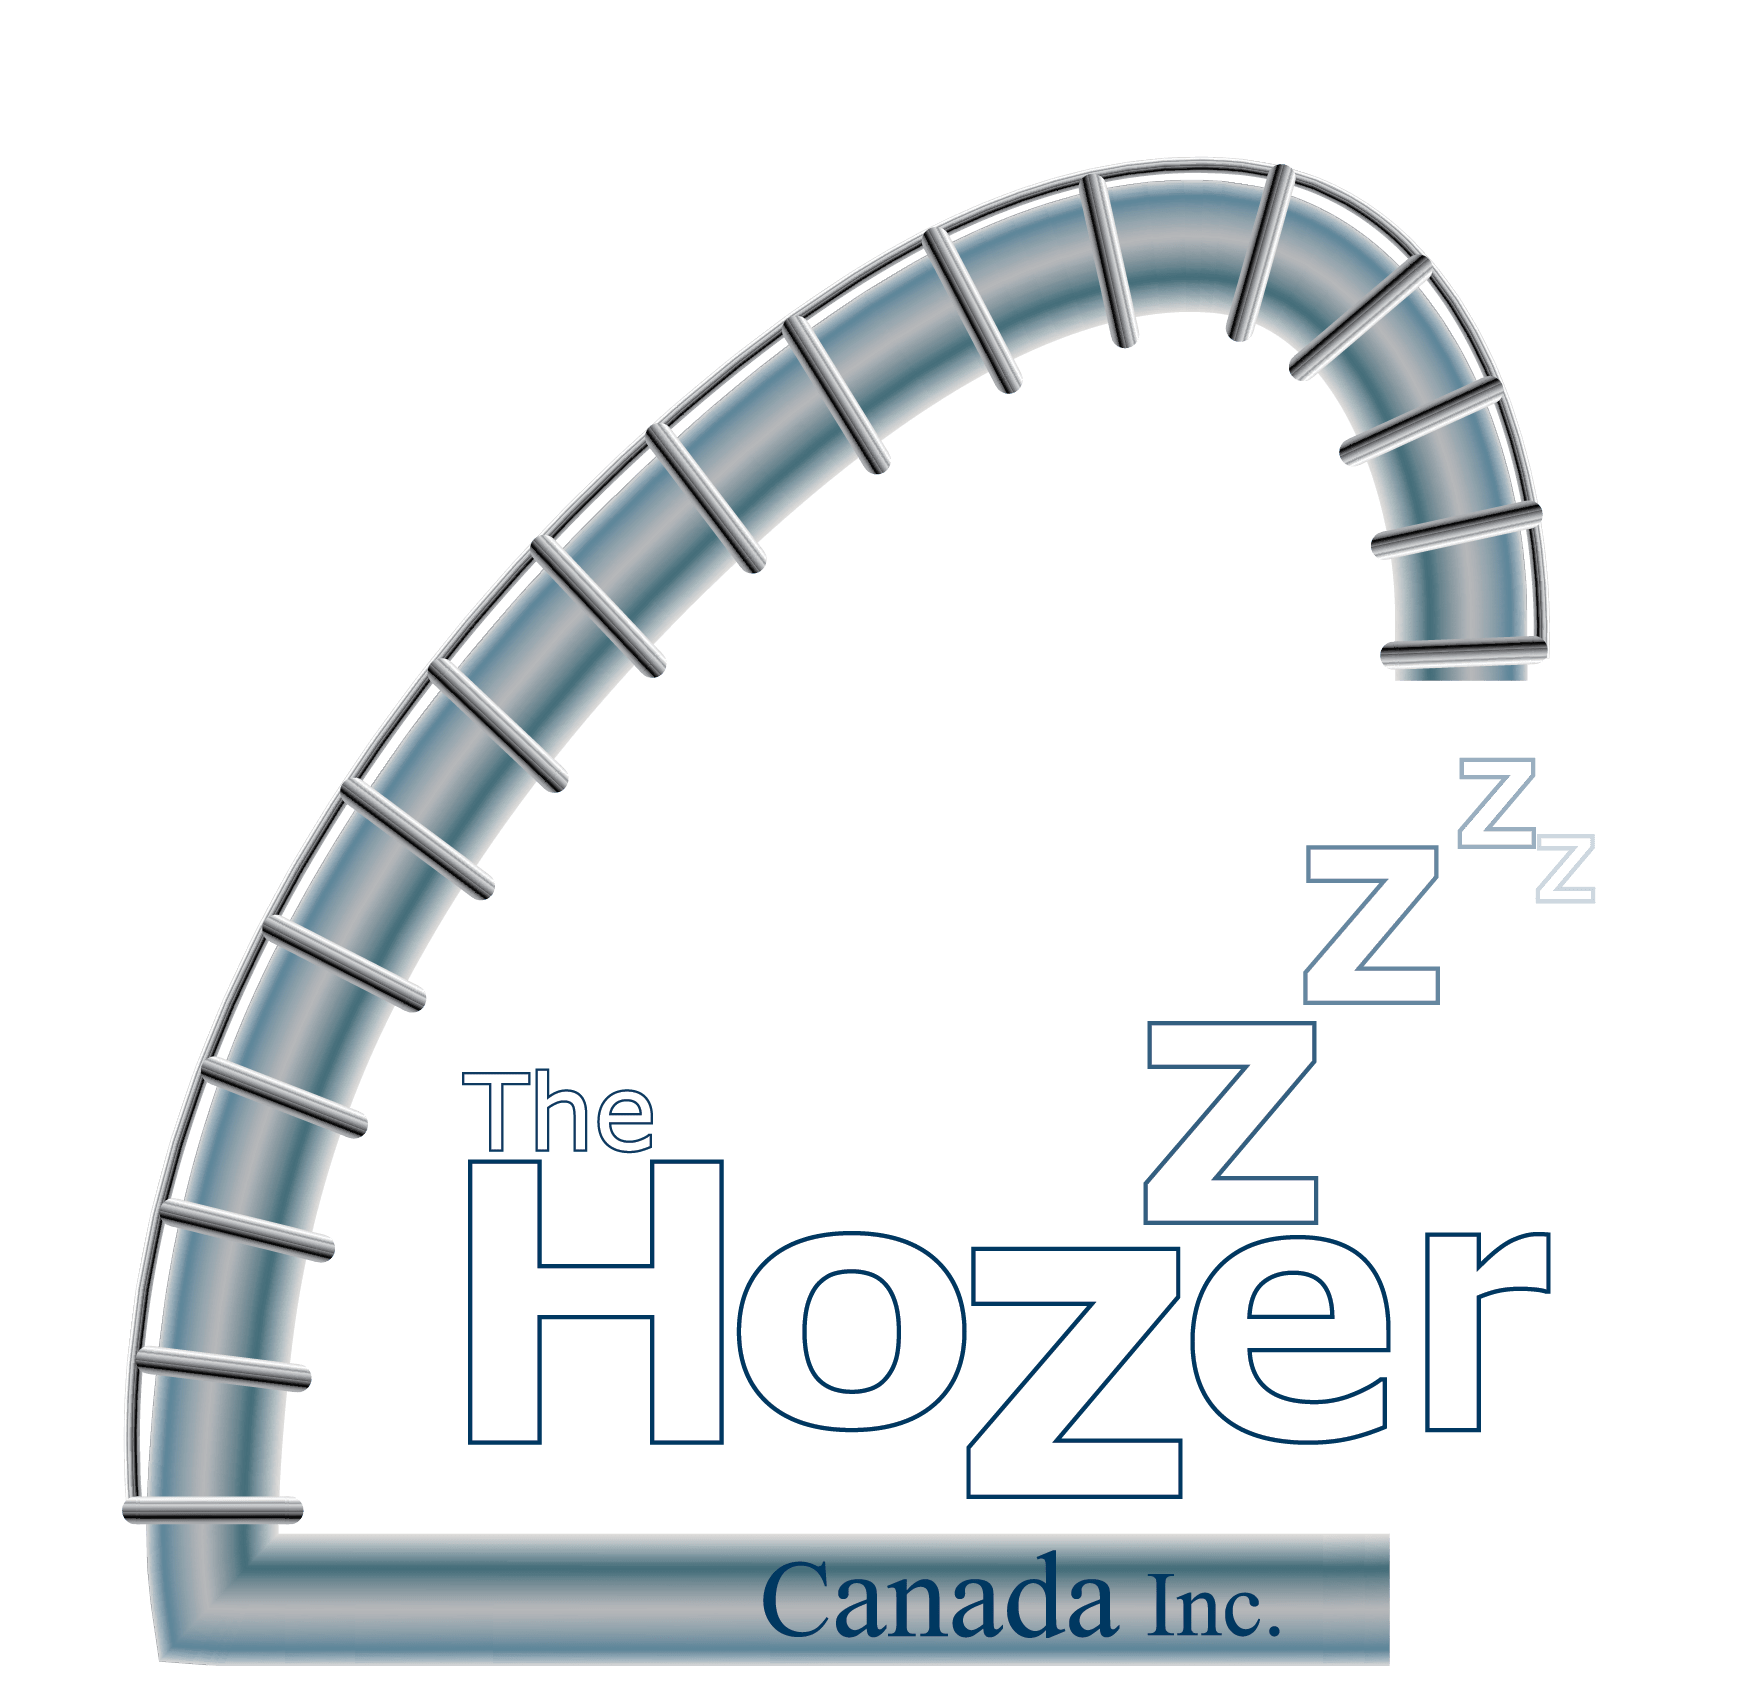 The HoZer Canada Inc